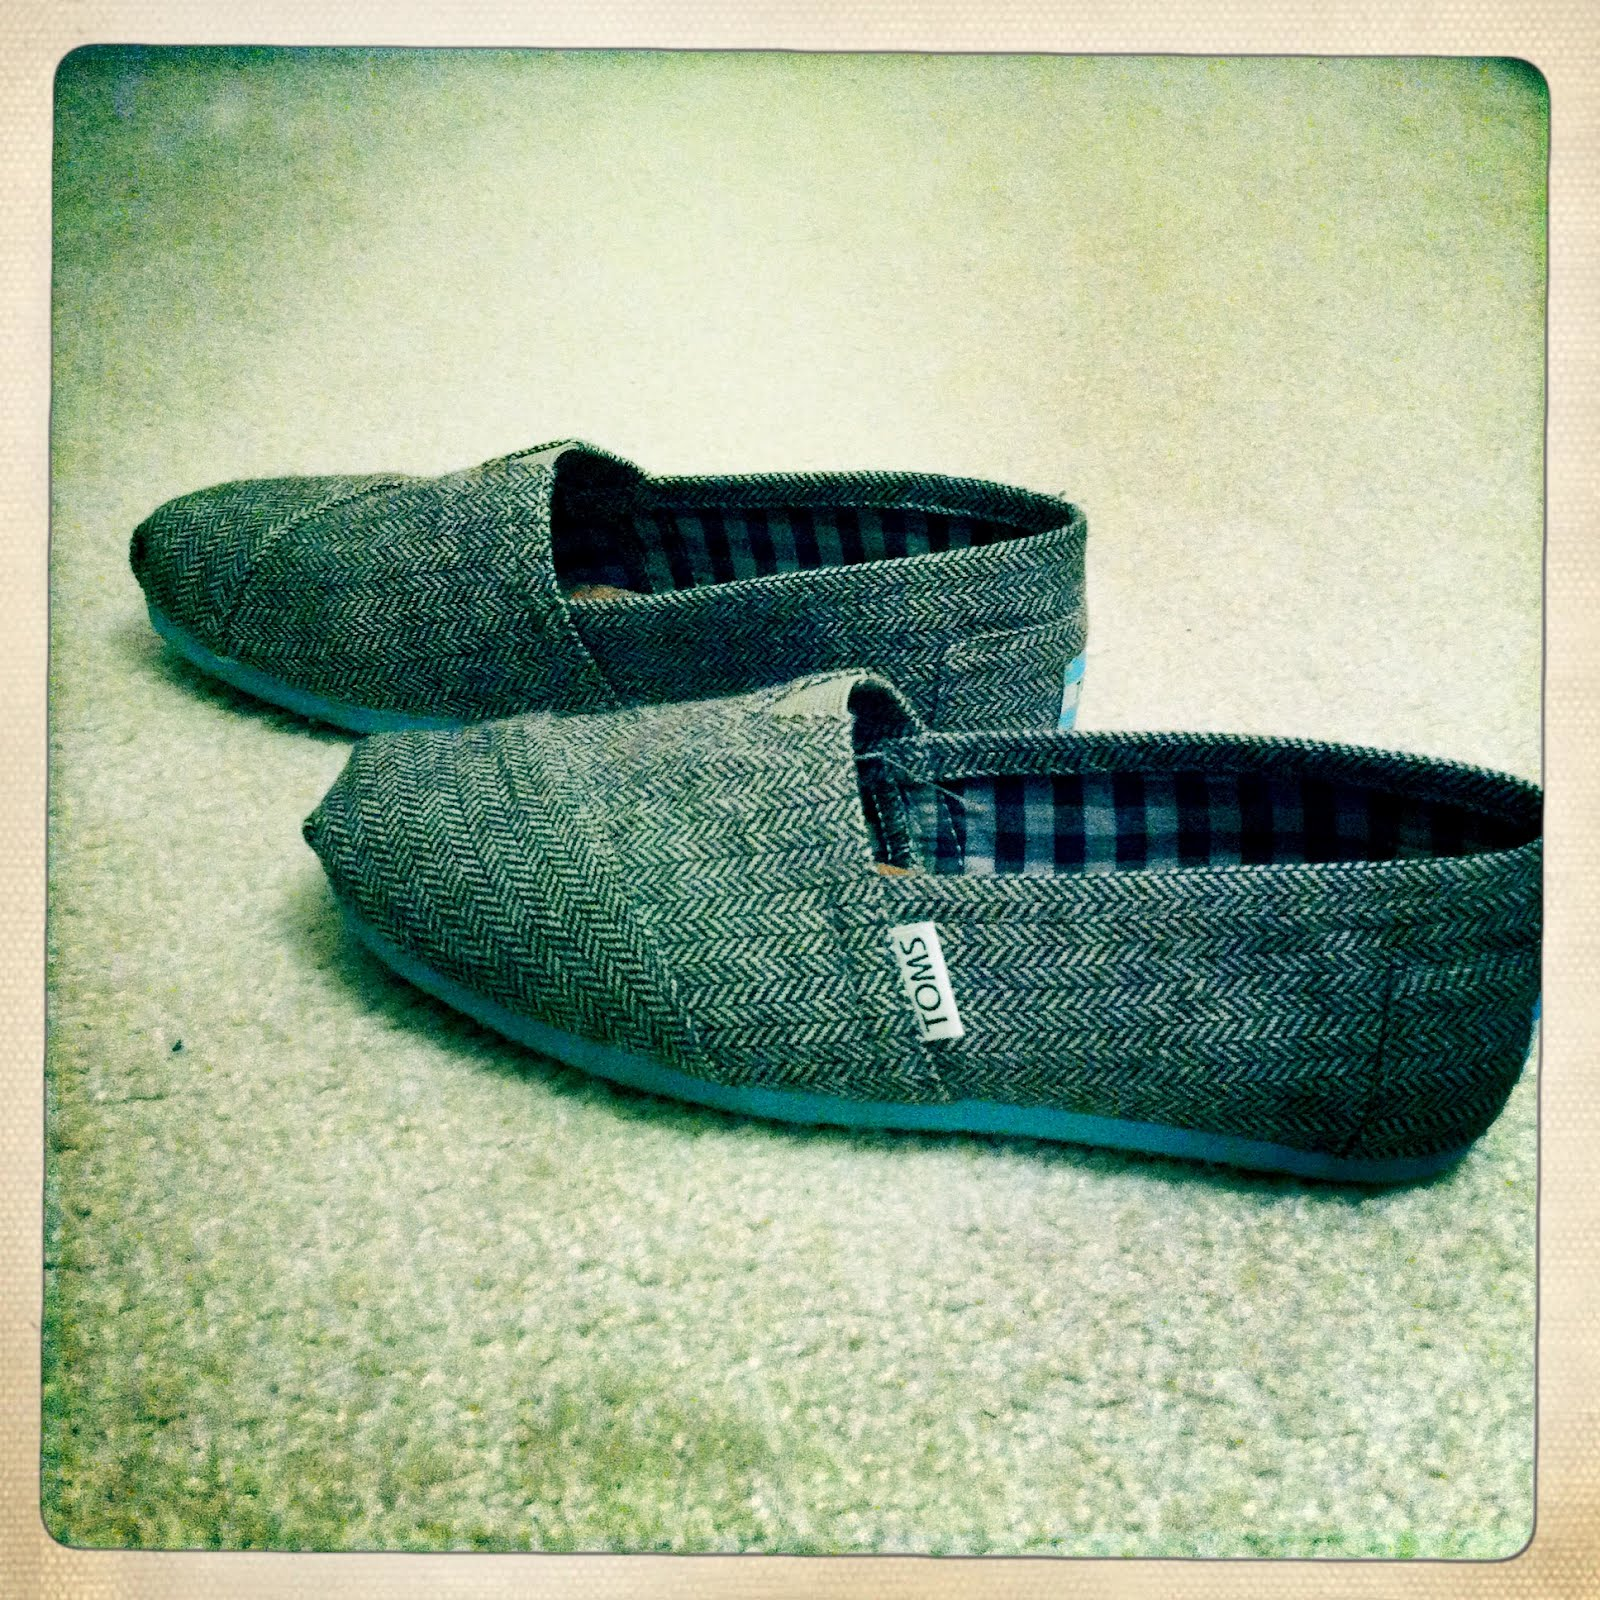 Dec 11, · What stores sells TOMS shoes? The holidays are around the corner & best friend has been wanting the, for a while to where it is getting to a point where it's annoying. ashamedphilippines.ml: Resolved.